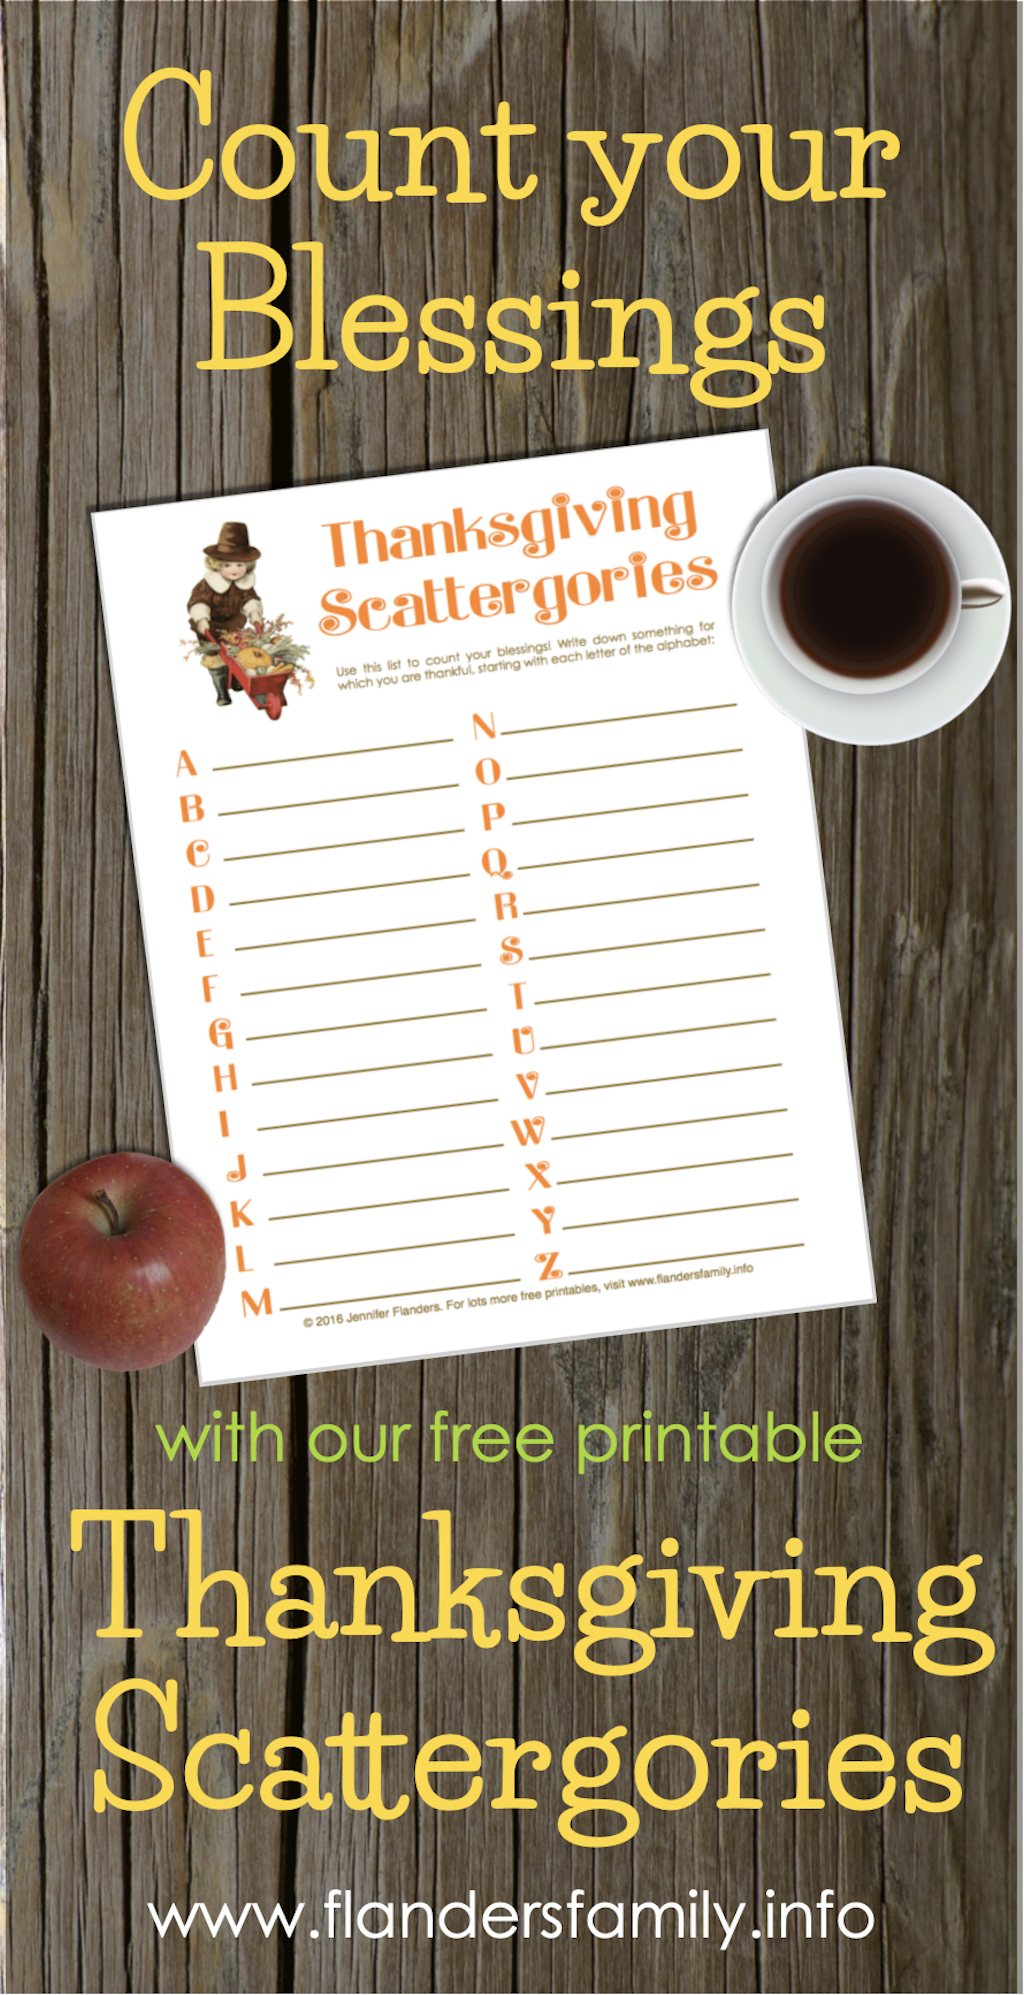 For A Fun Way To Count Your Blessings This Holiday Season